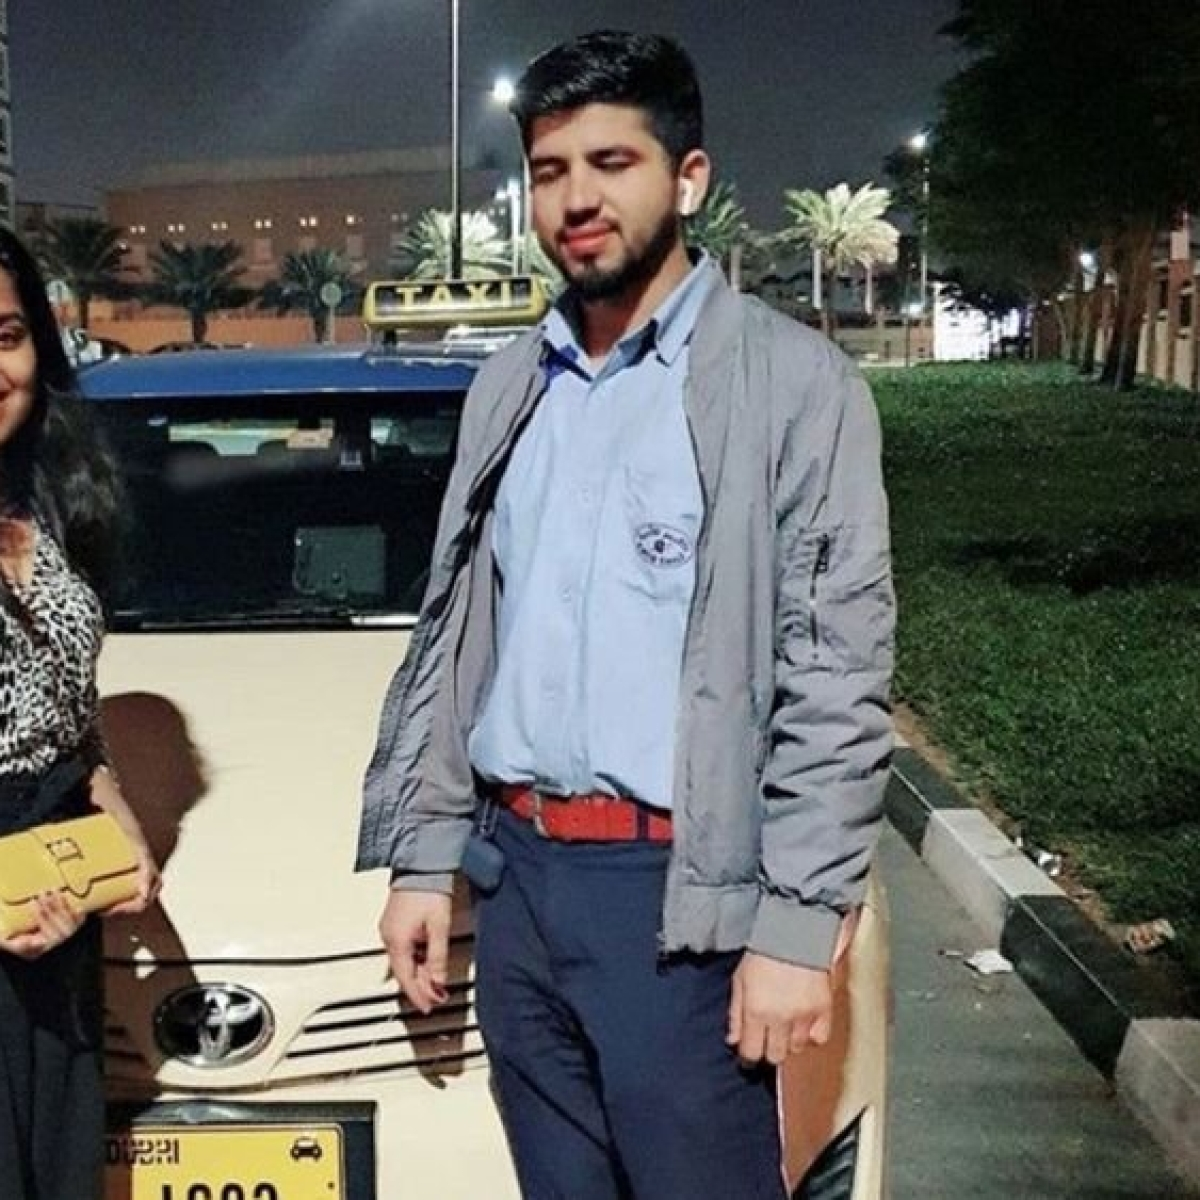 Dubai: Pak driver saves Indian girl's day by returning her wallet